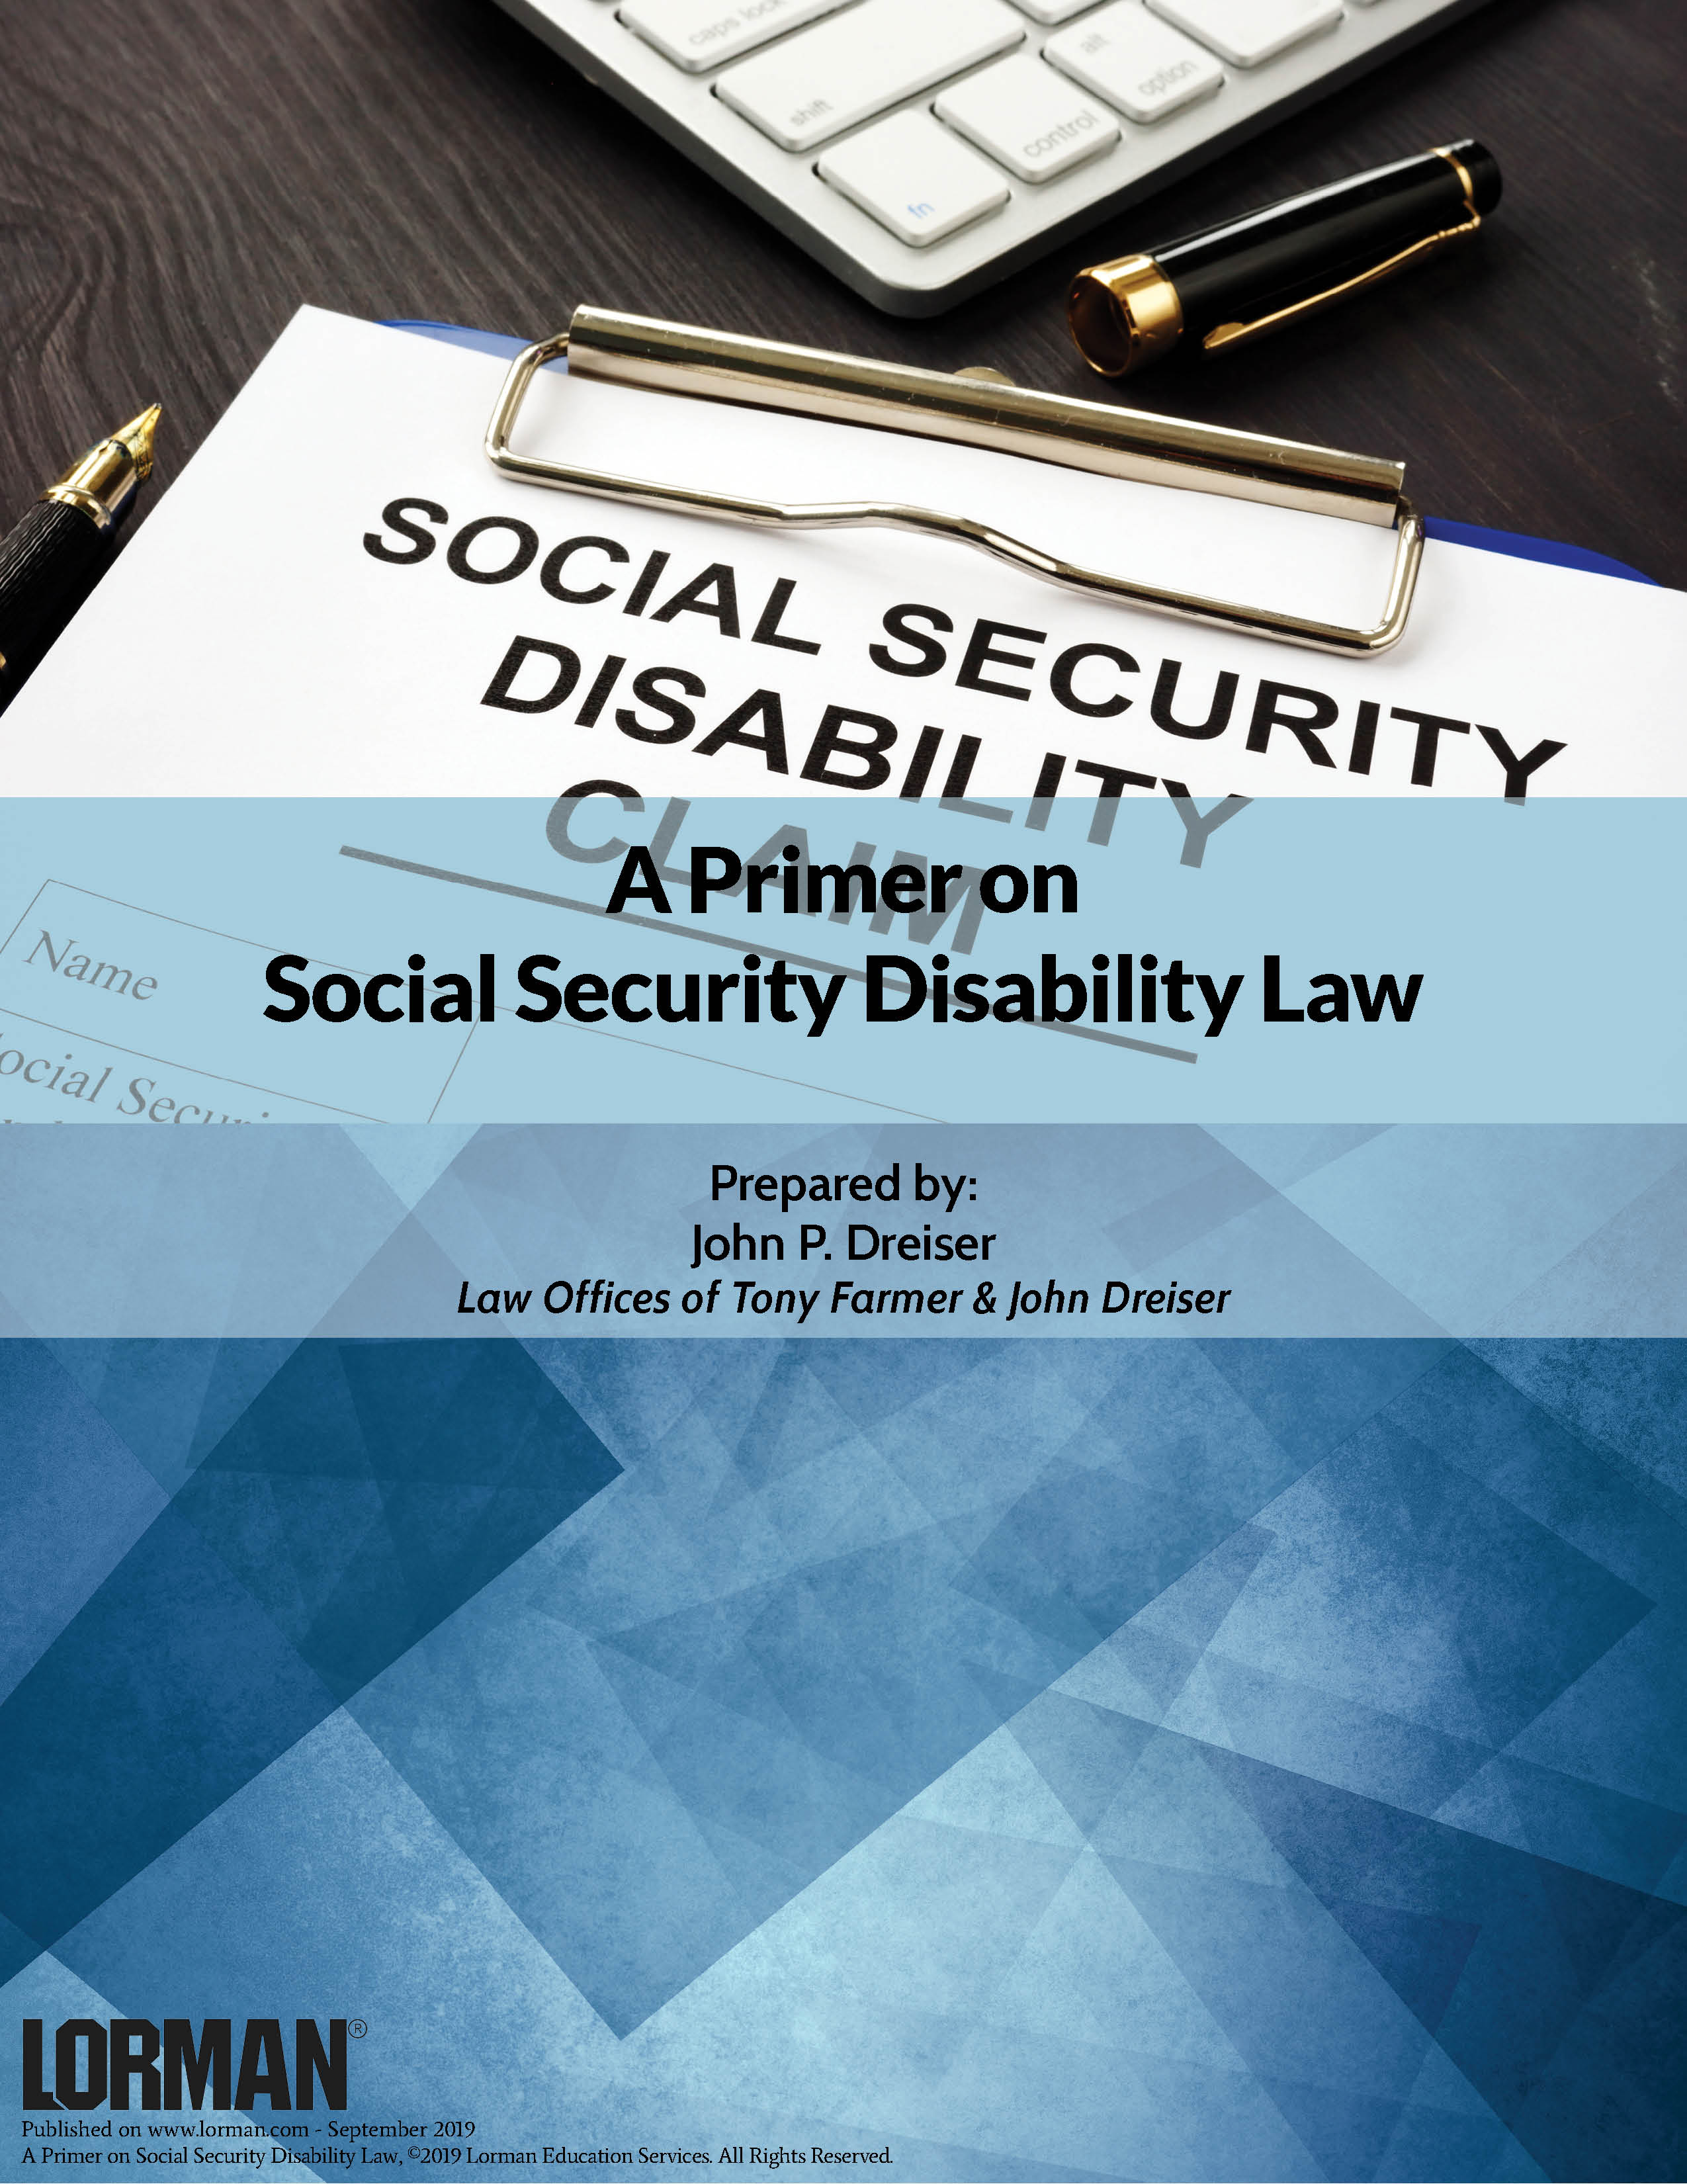 A Primer on Social Security Disability Law